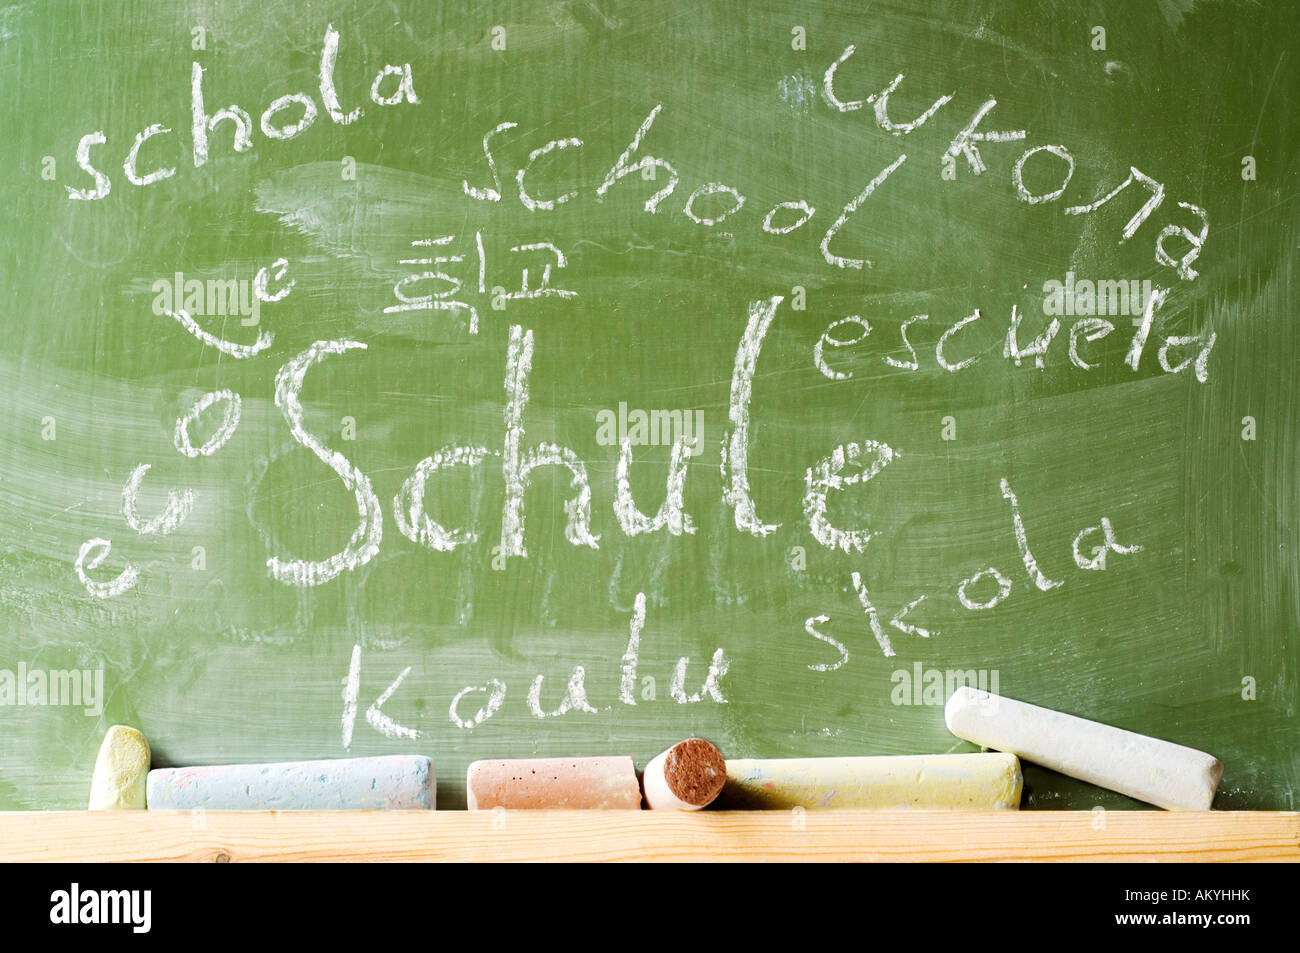 School Internationally, At a blackboard the word school stands written with chalk in many languages, german, france, - Stock Image